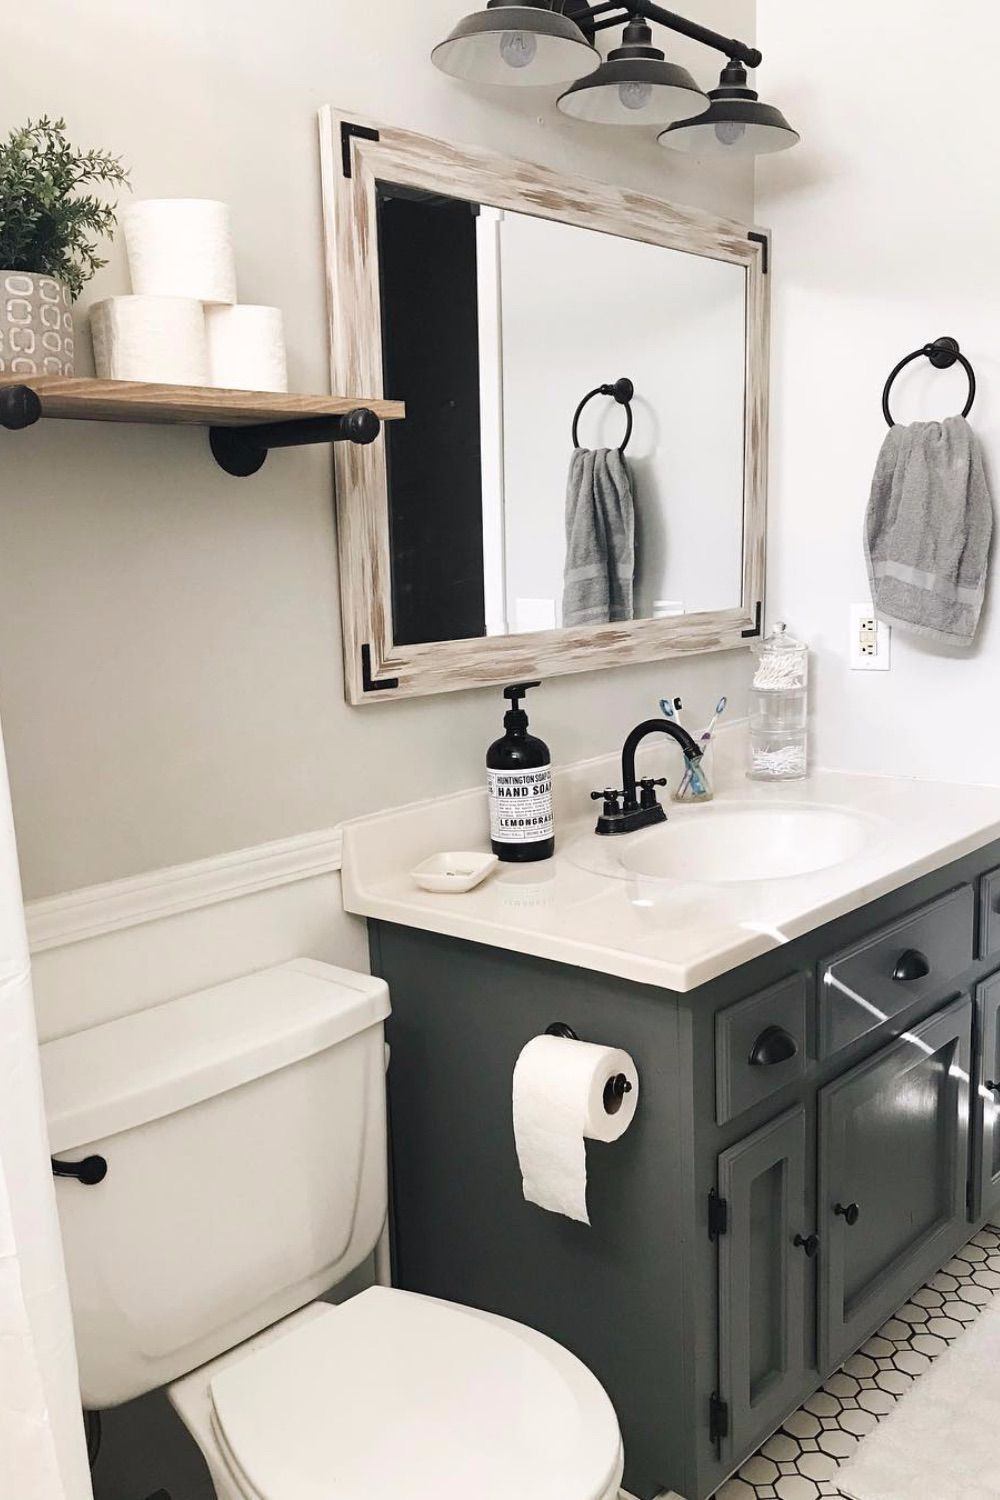 Guest Bathroom Ideas That Are Easy To Do - SwankyDen.com 2020